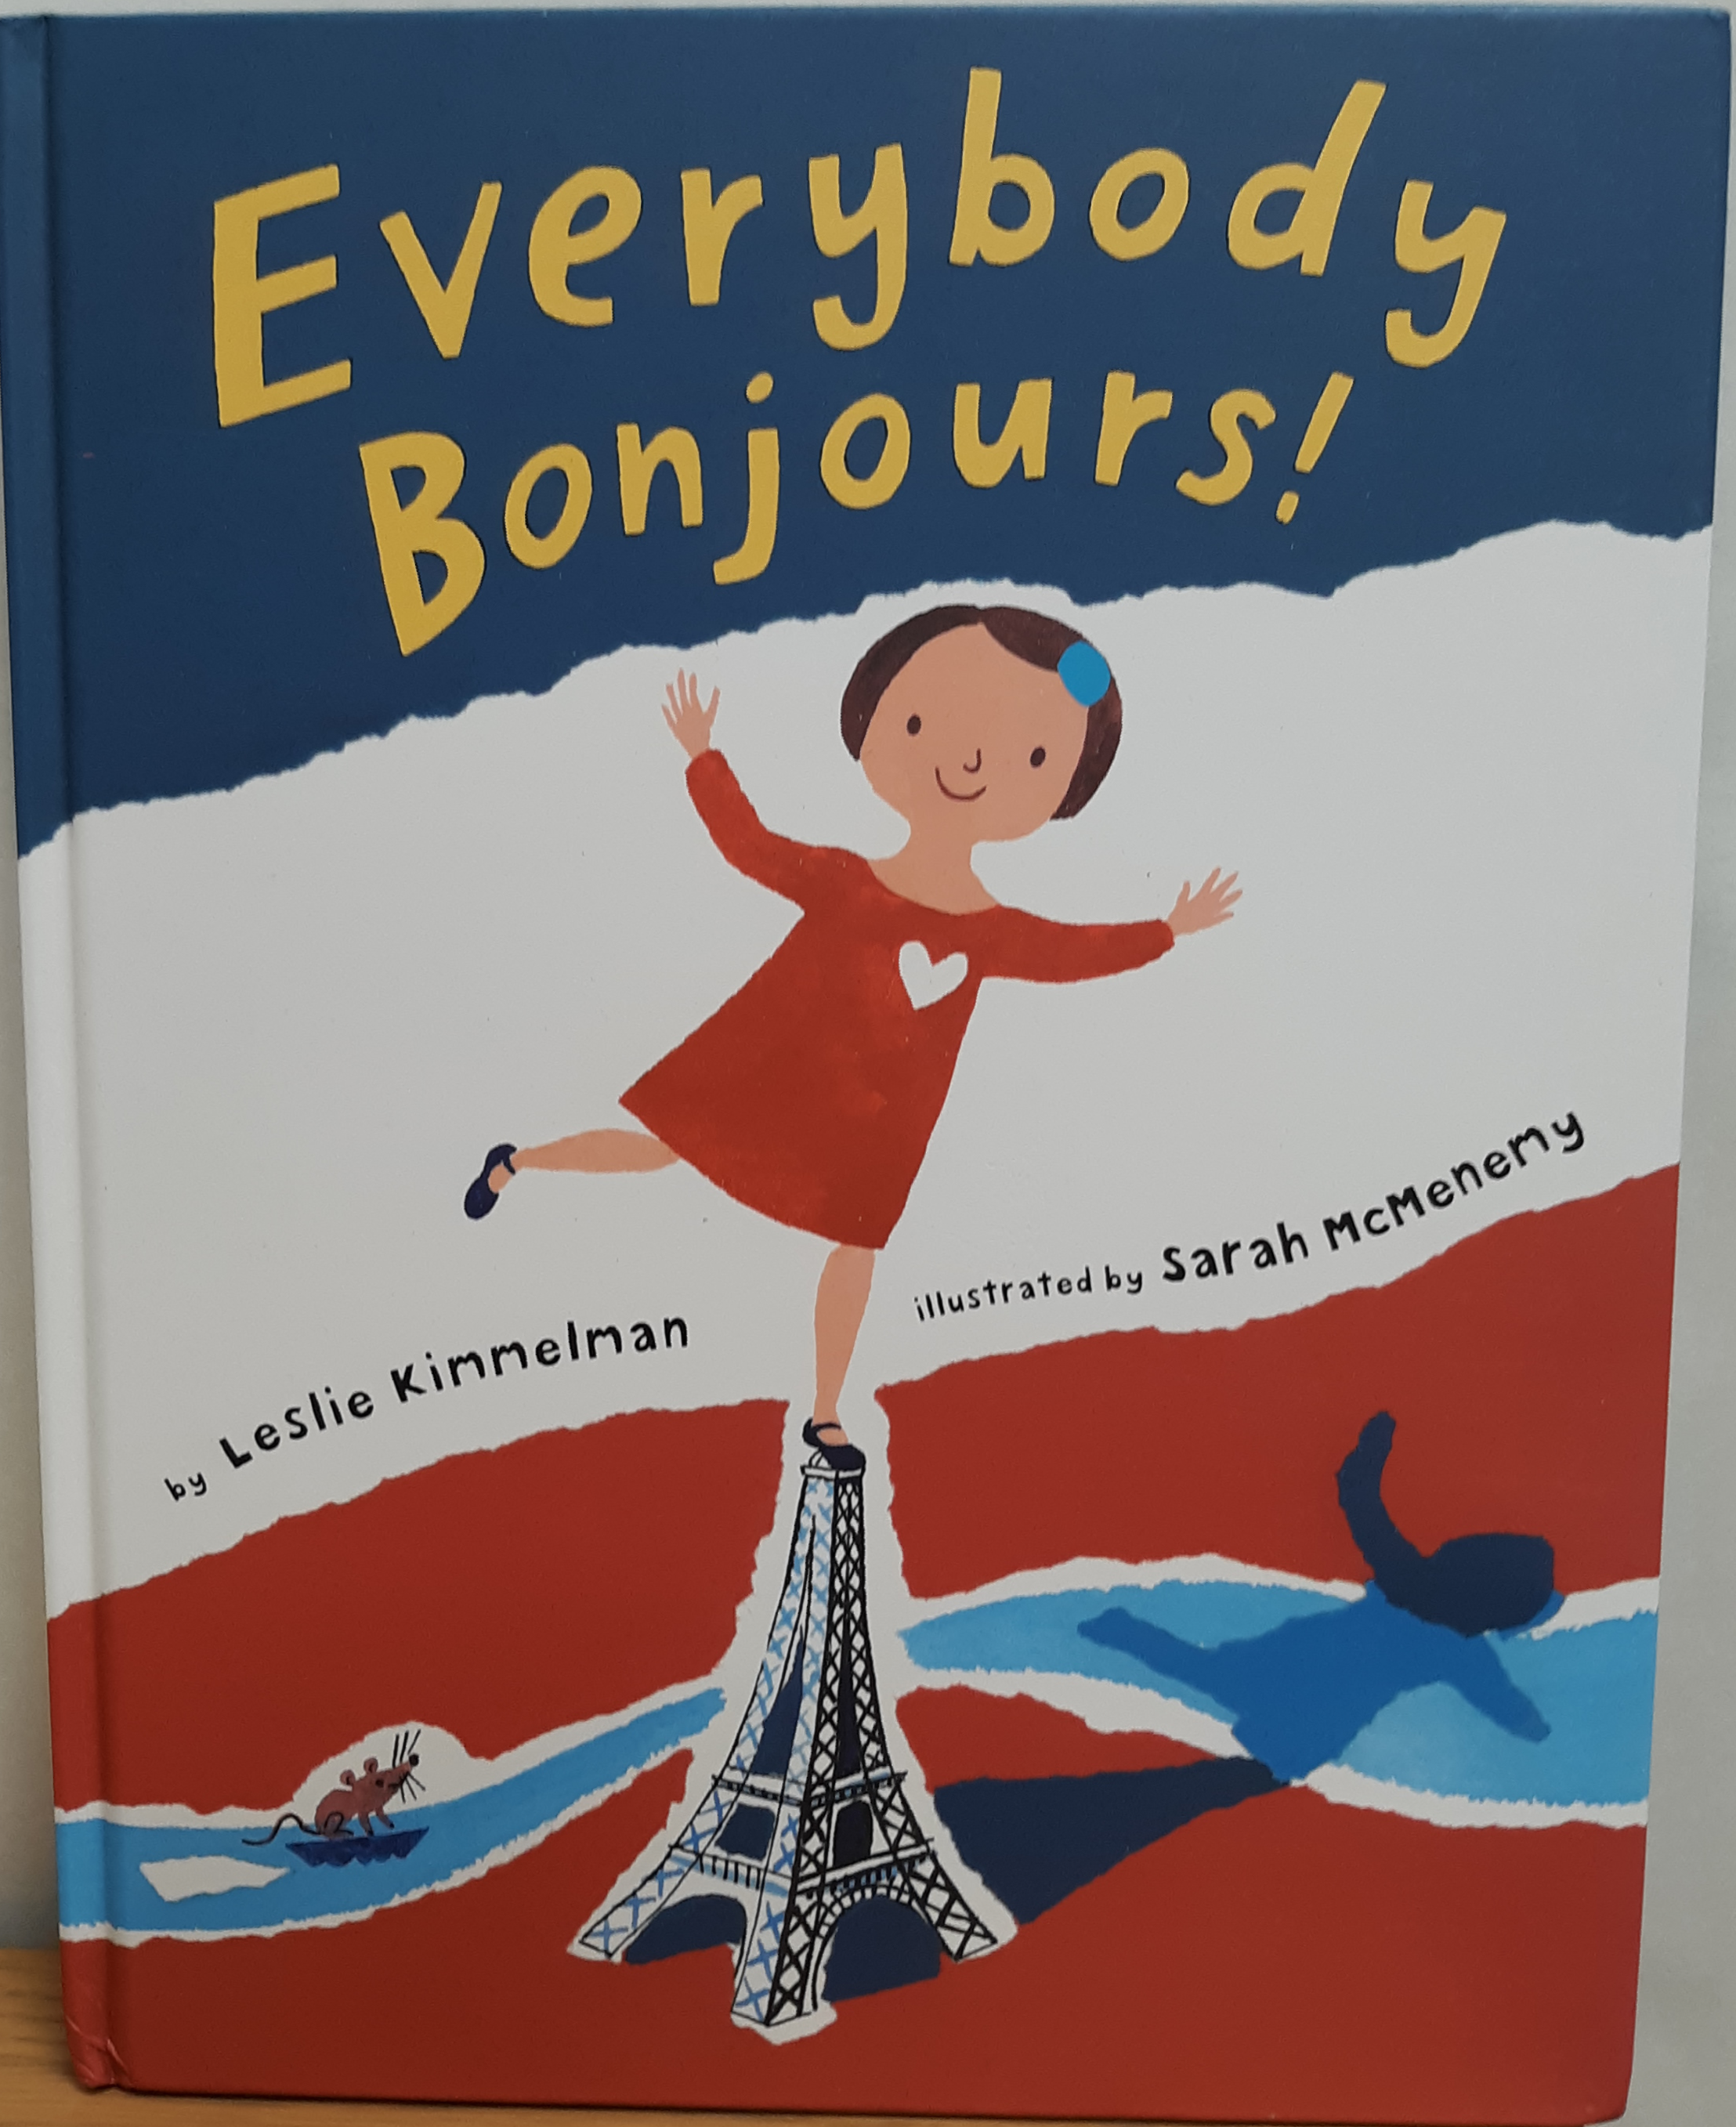 https://0201.nccdn.net/1_2/000/000/19b/546/everybody-bonjour.png